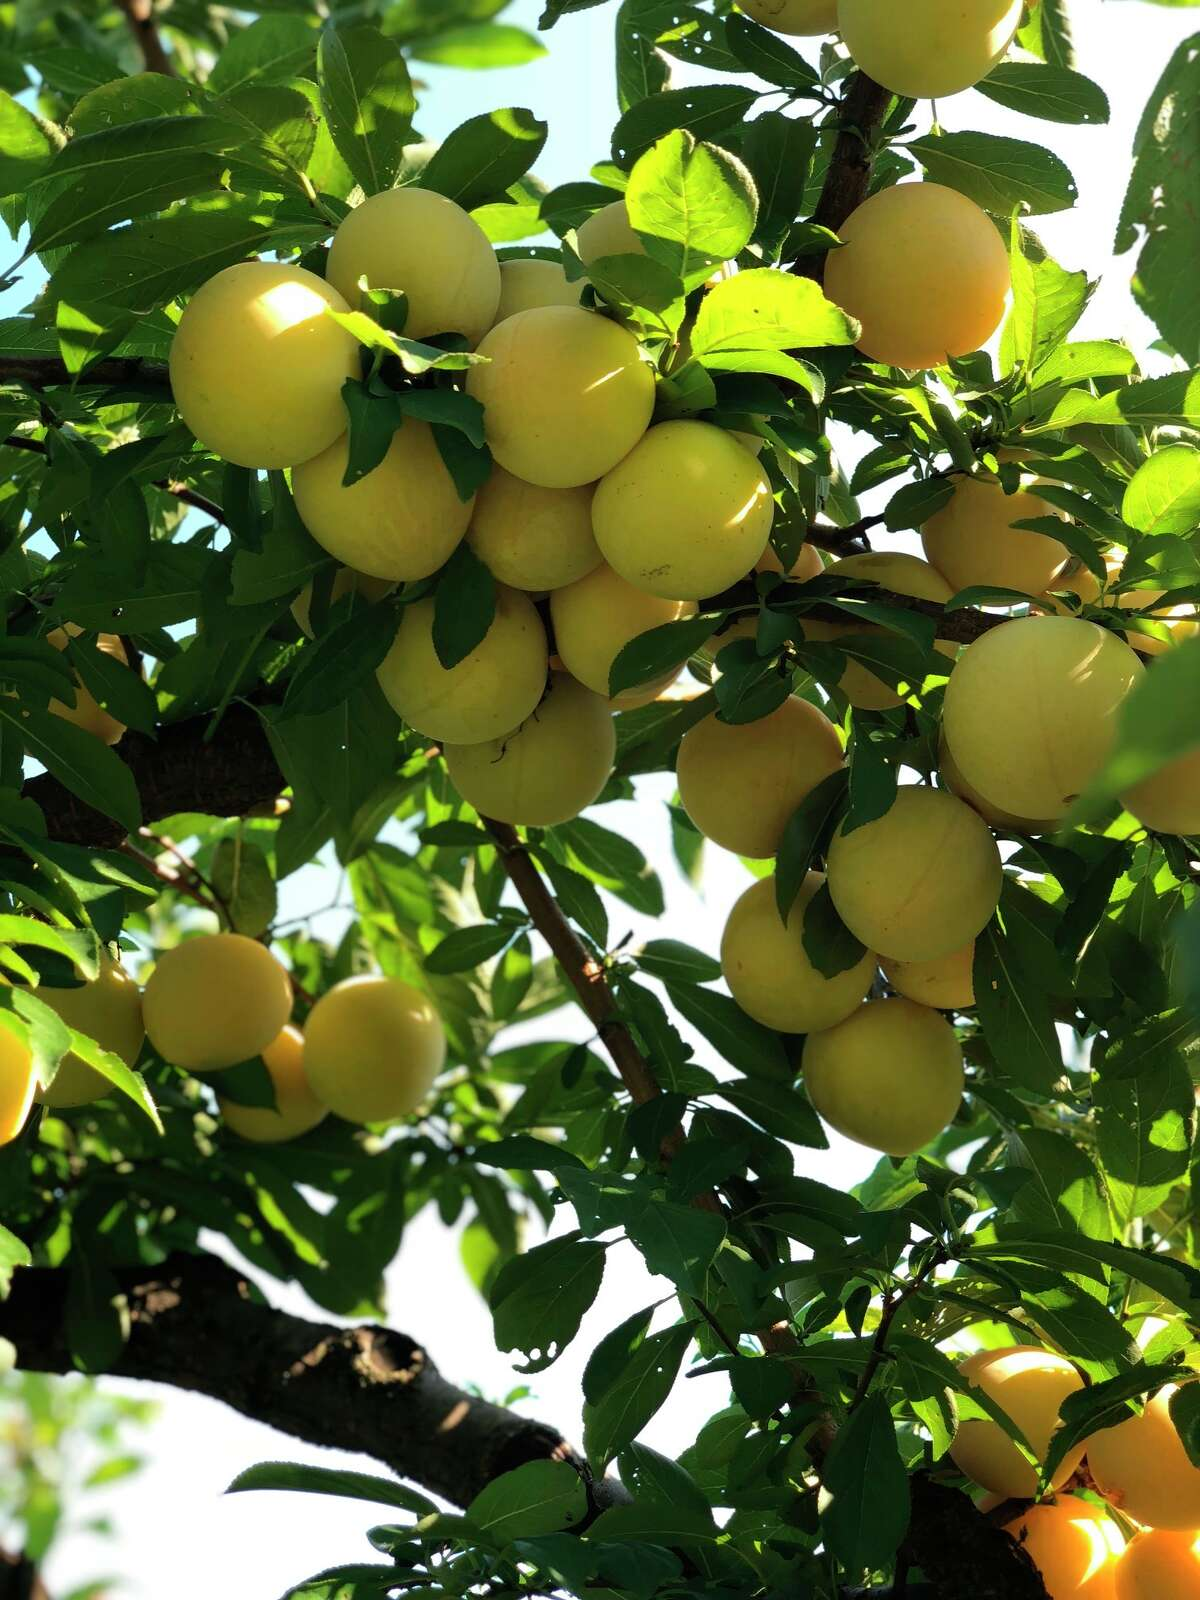 This August 2018 photo shows yellow plums in Bedford, N.Y. In the last warm weeks of summer, it's hard to imagine that all of today's tomatoes and corn and peaches will be but memories in just a couple of months. With a bit of forethought, and a bit of time, we can safeguard some of this magnificent produce and draw upon it all winter long. When you preserve food, you are using techniques to stop its natural decomposition, killing or preventing the growth of microbes. (Katie Workman via AP)